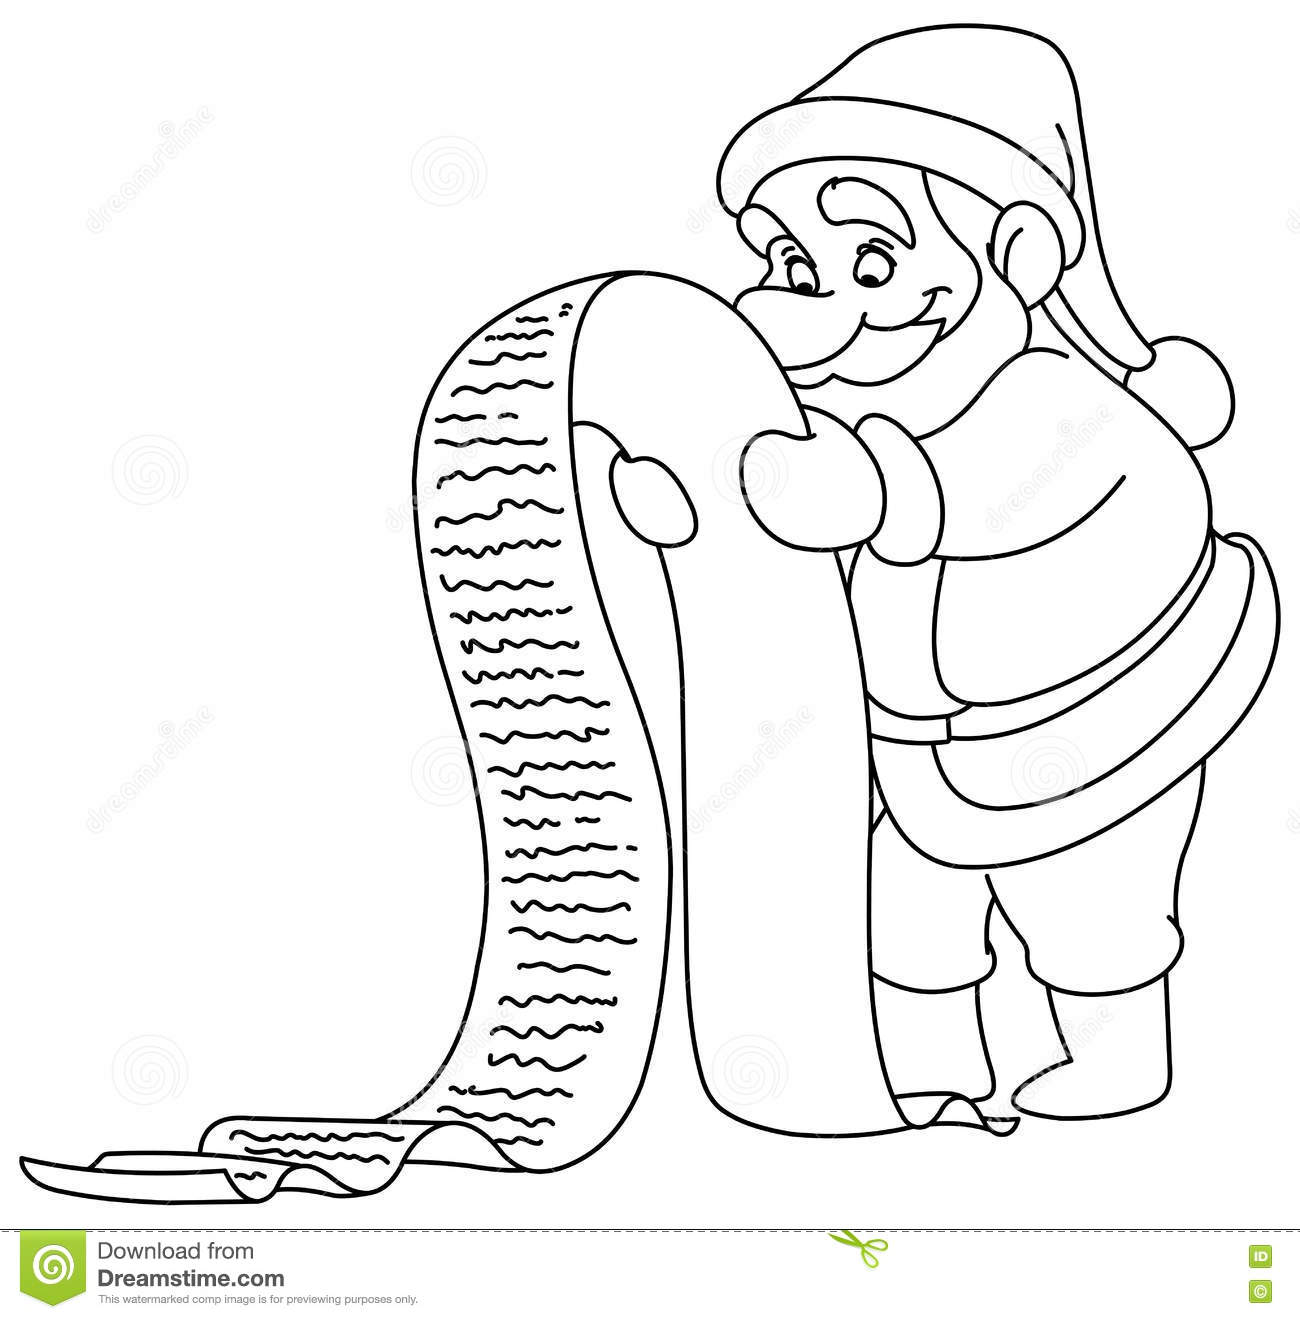 Coloring Christmas List With Outlined Santa Stock Vector Illustration Of Looking